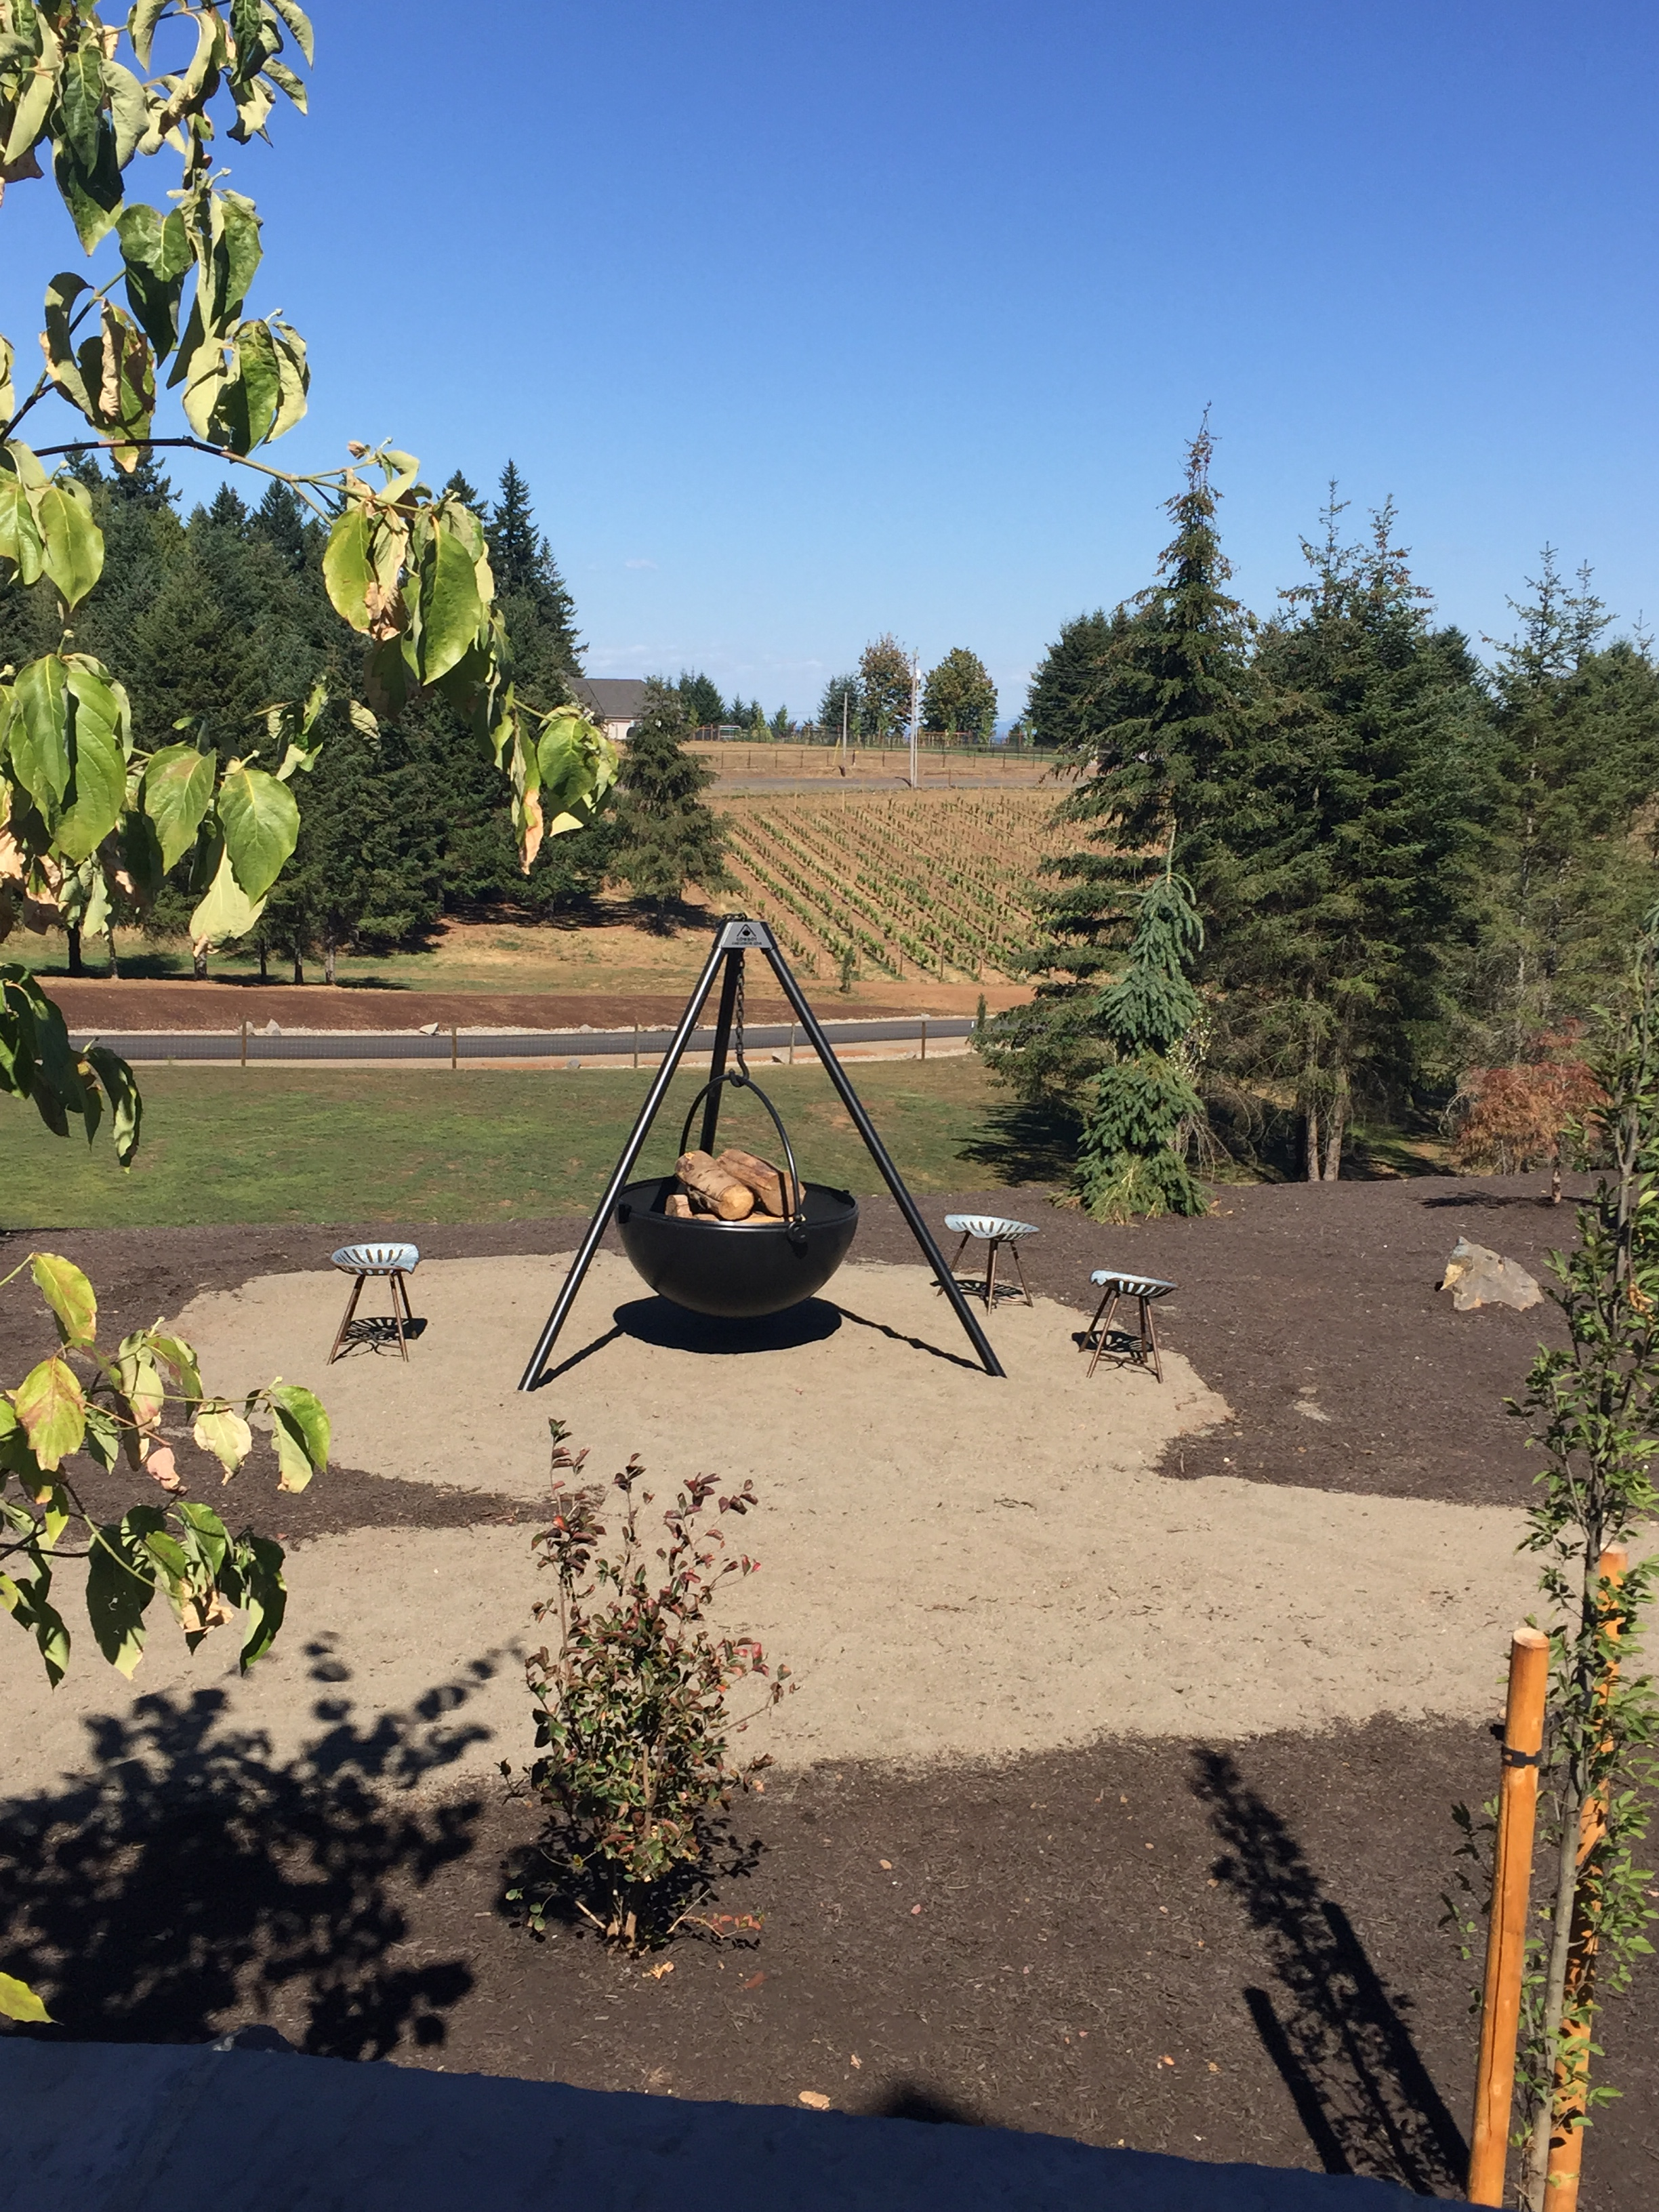 Another fire pit, overlooking the vineyard...